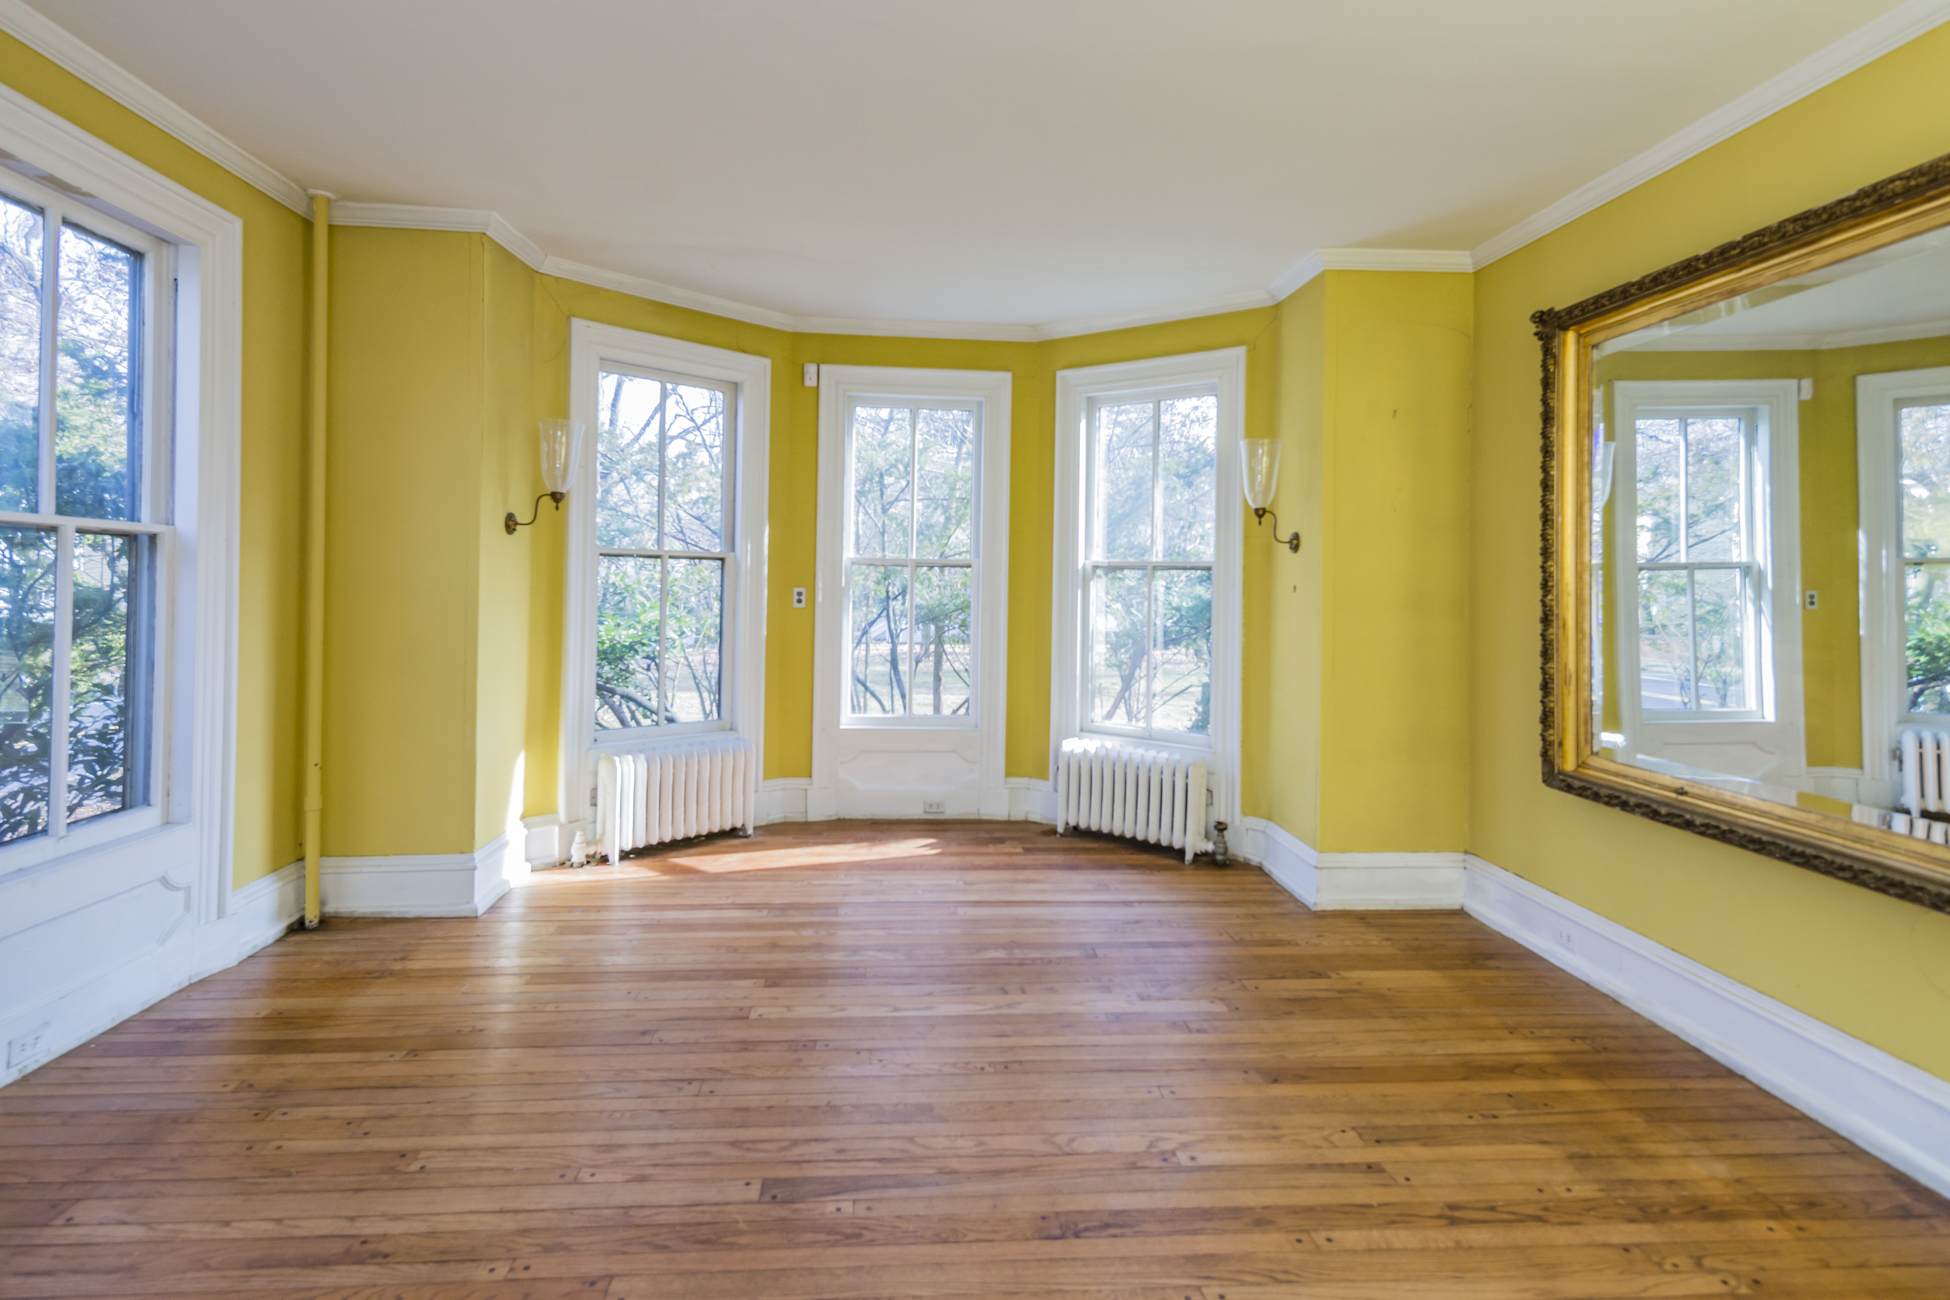 Additional photo for property listing at Calling All Historic Home Lovers 16 East Delaware Avenue Pennington, New Jersey 08534 United States